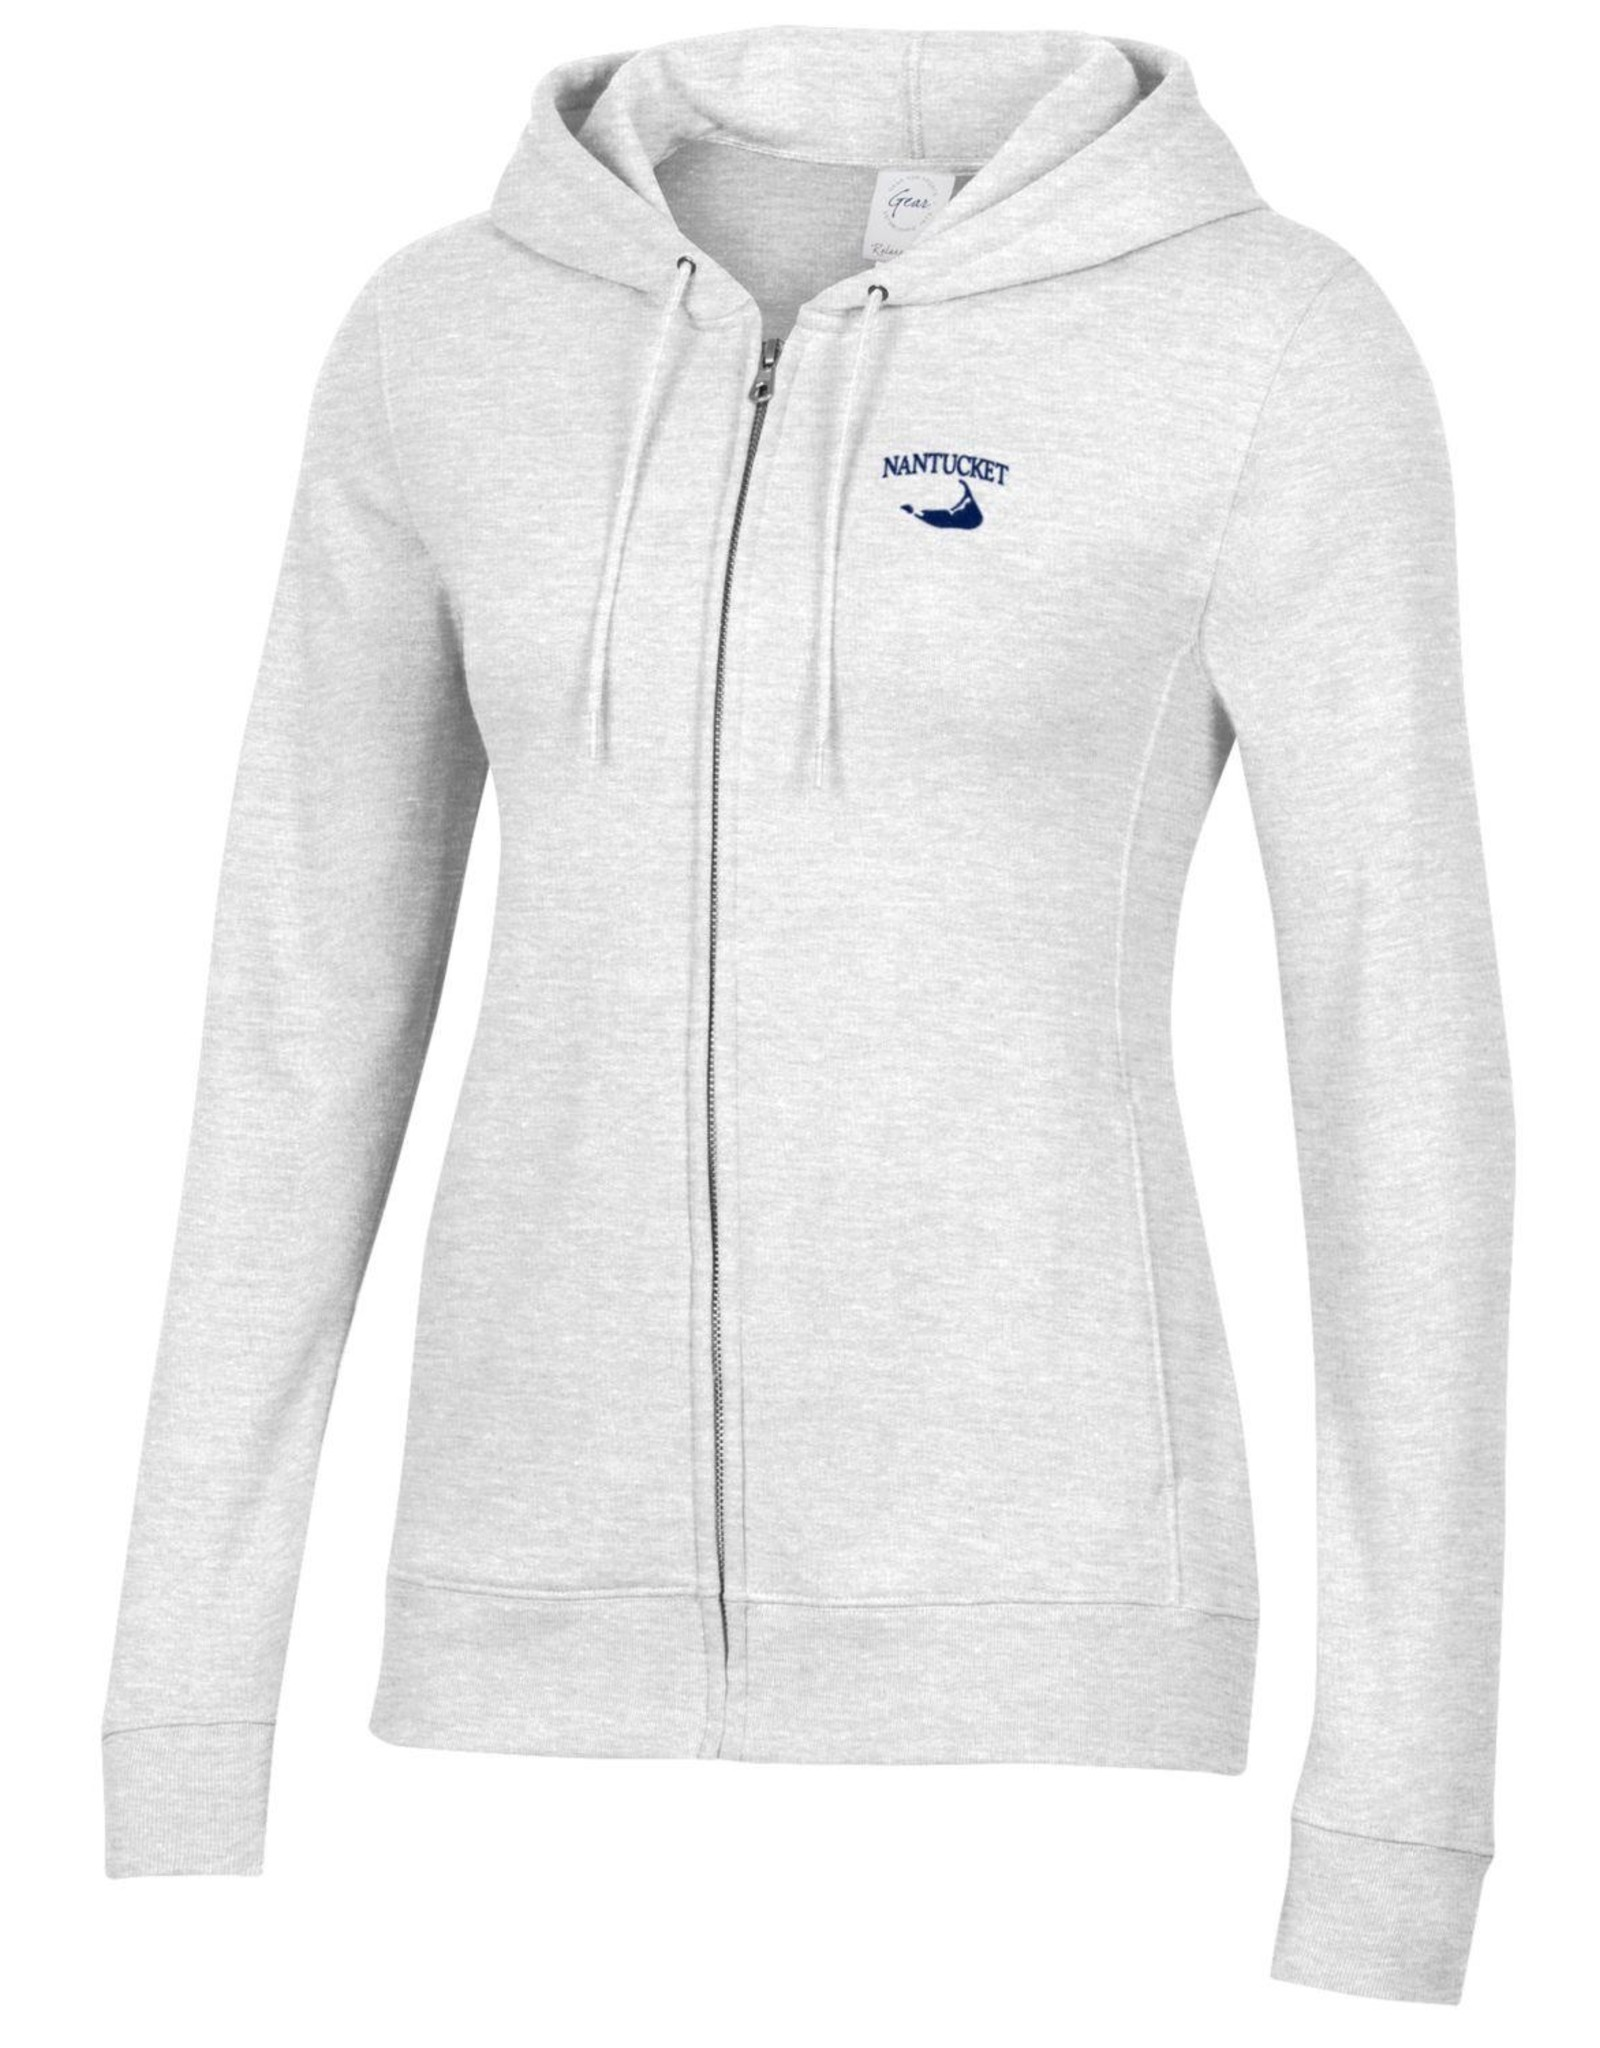 Gear Gear Ladies Full Zip Hoodie